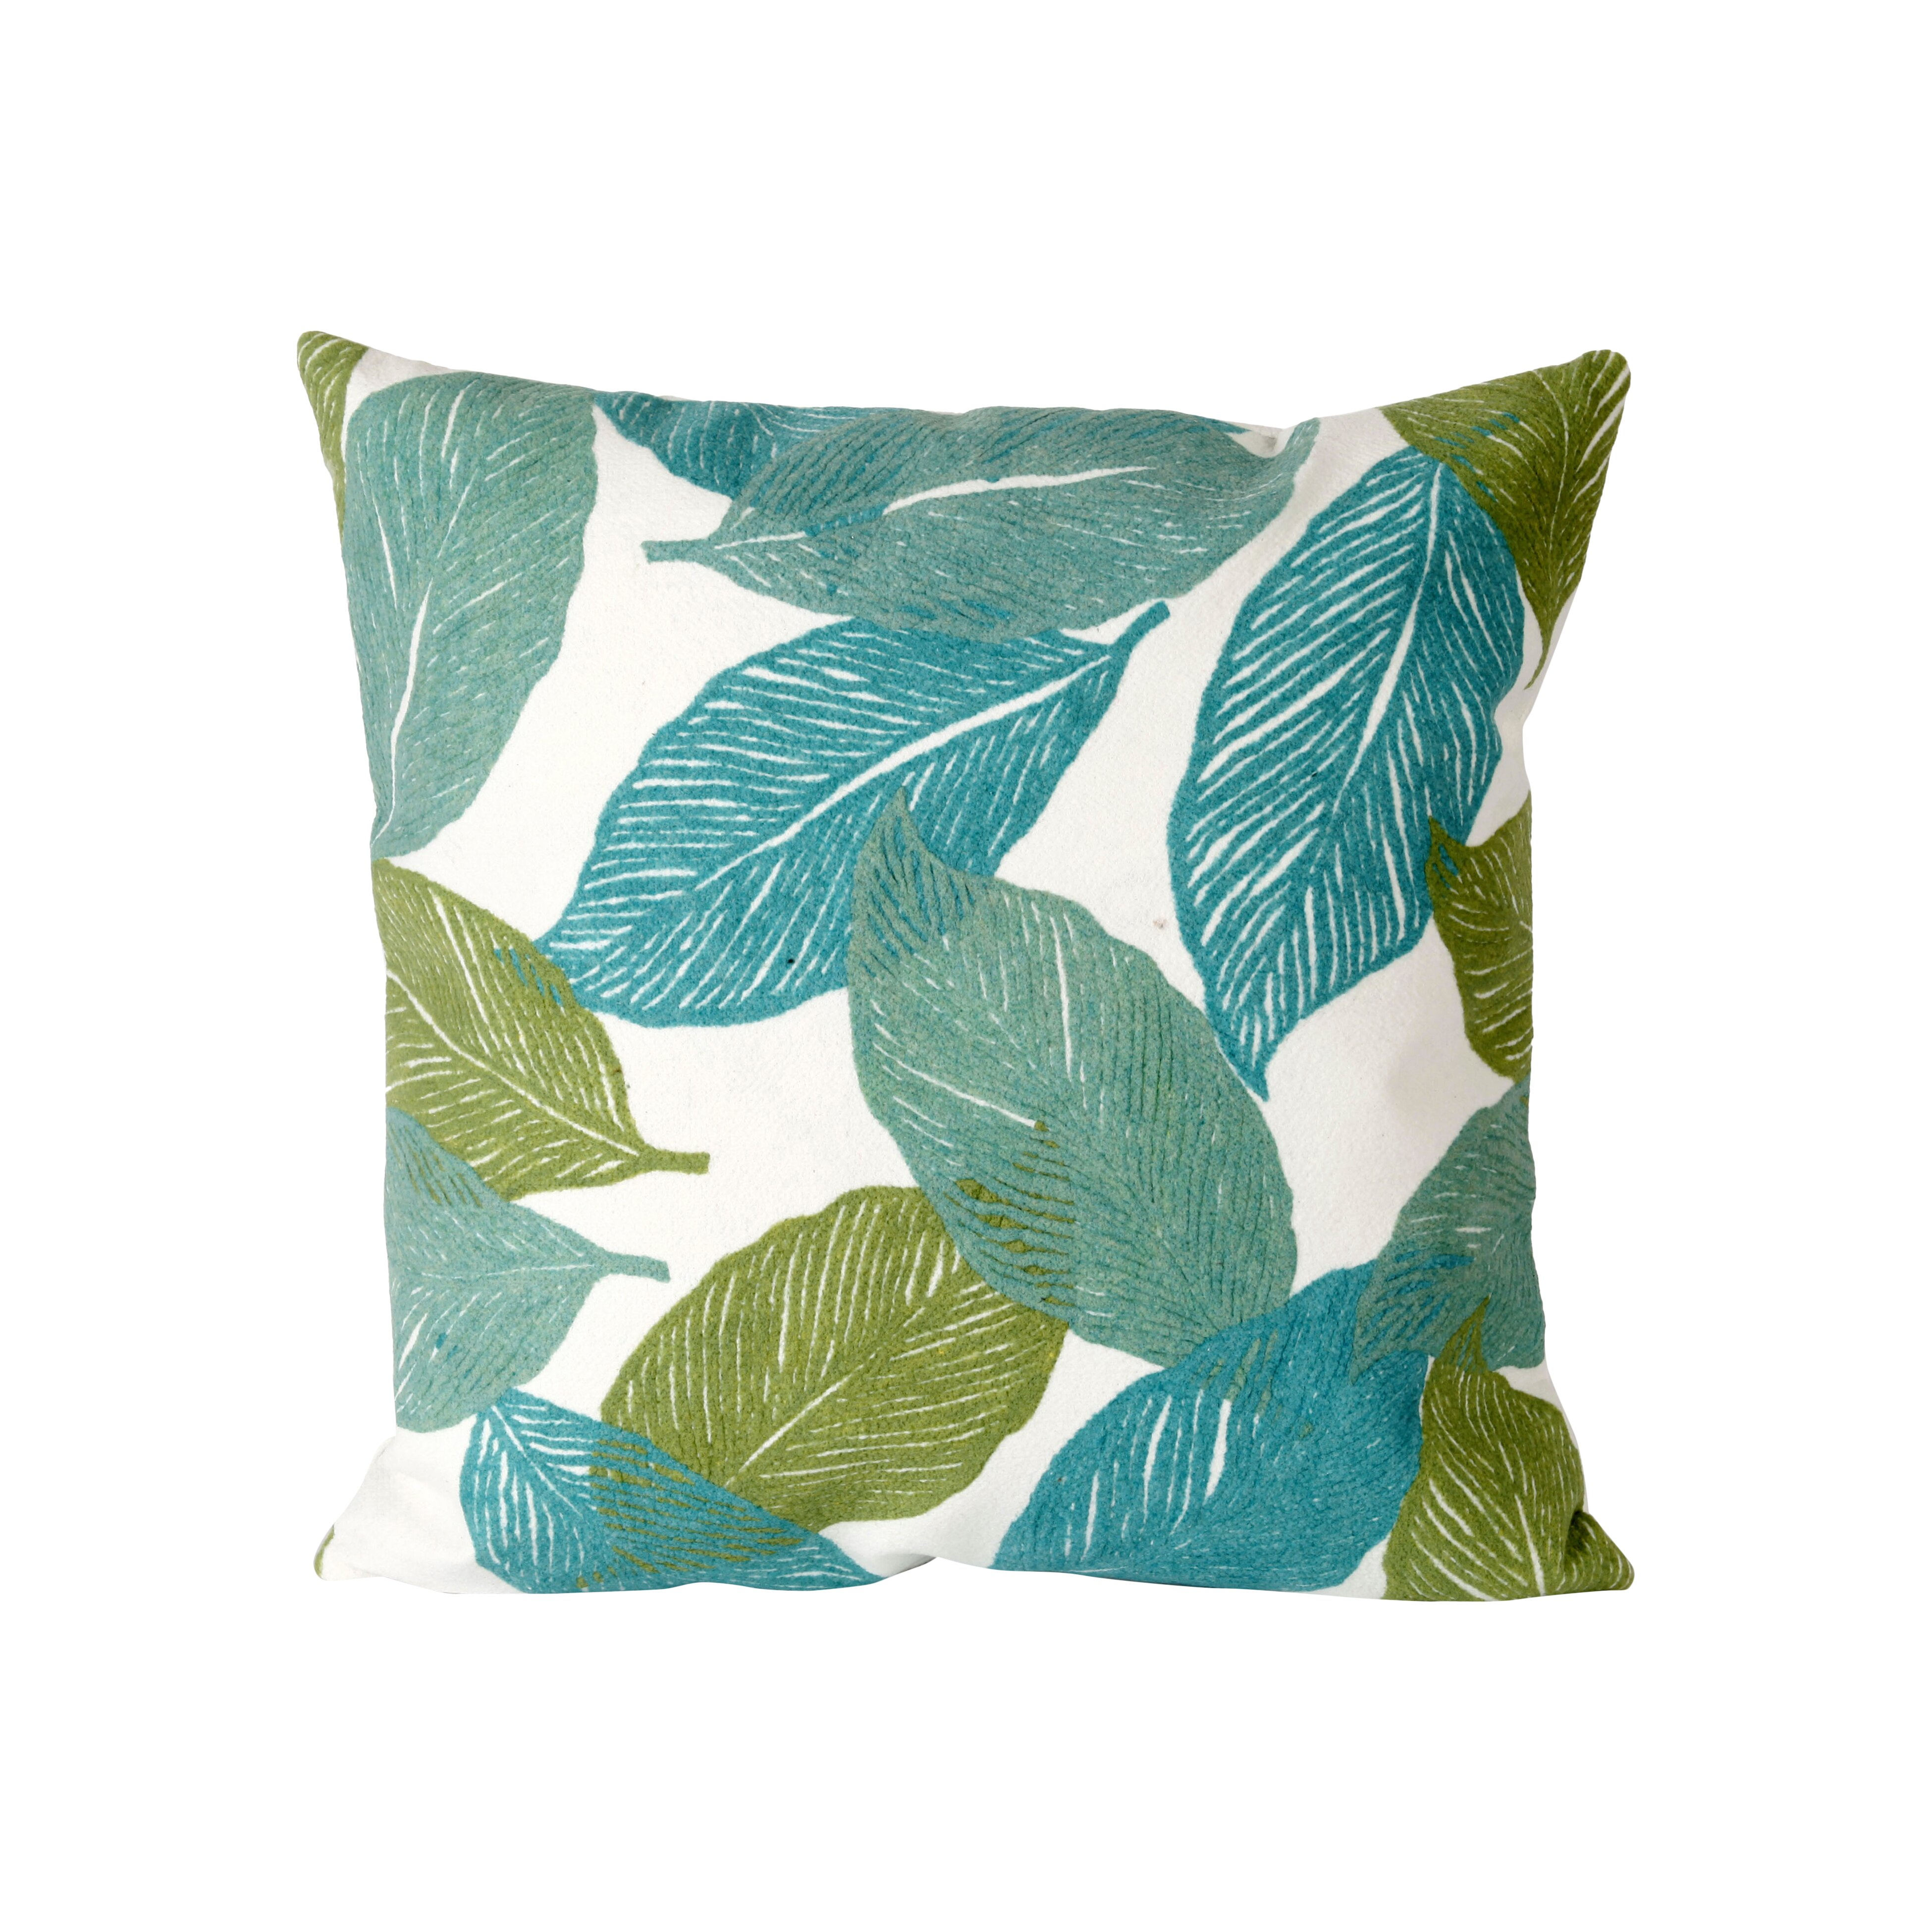 Throw Pillows In Abuja : Liora Manne Mystic Leaf Indoor/Outdoor Throw Pillow & Reviews Wayfair